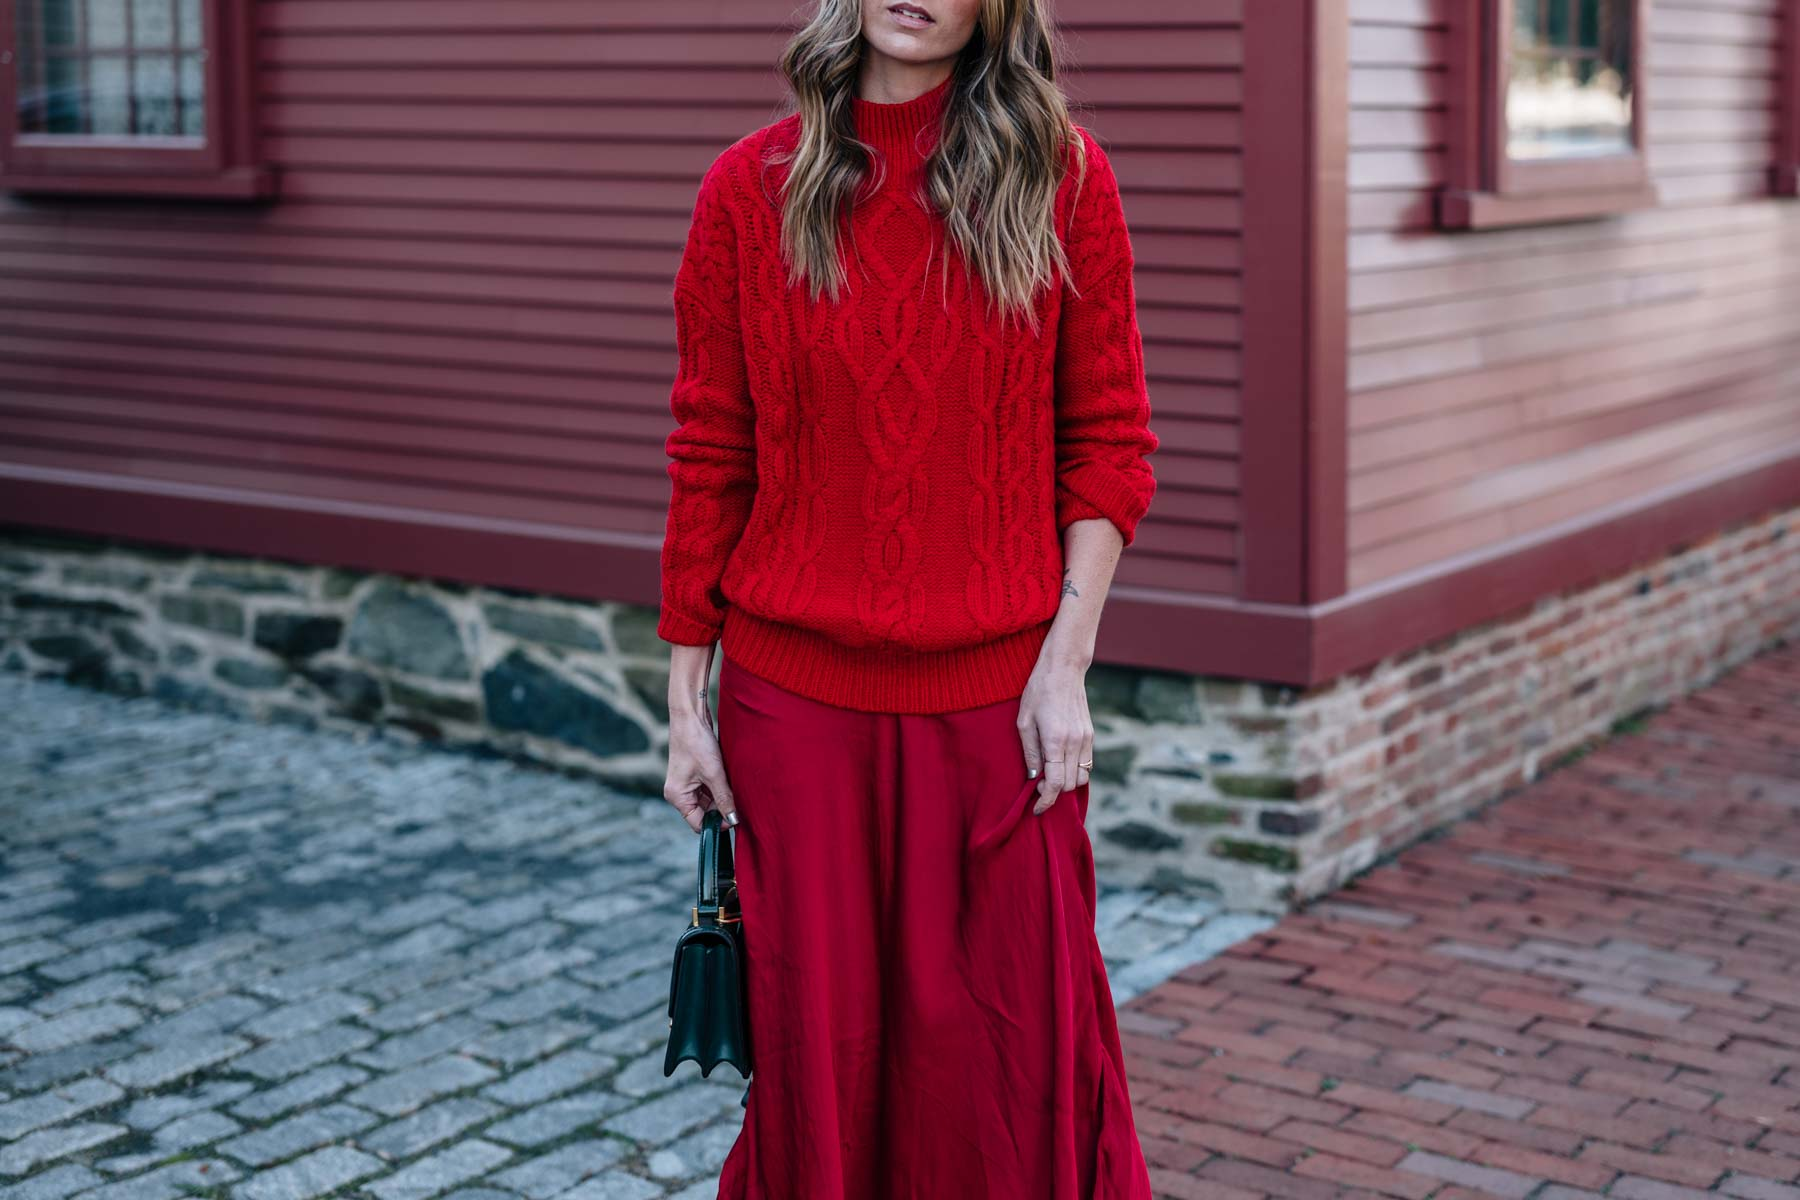 Jess Ann Kirby shares how to wear red on red this holiday season with a cable knit sweater and sparkle ankle boots